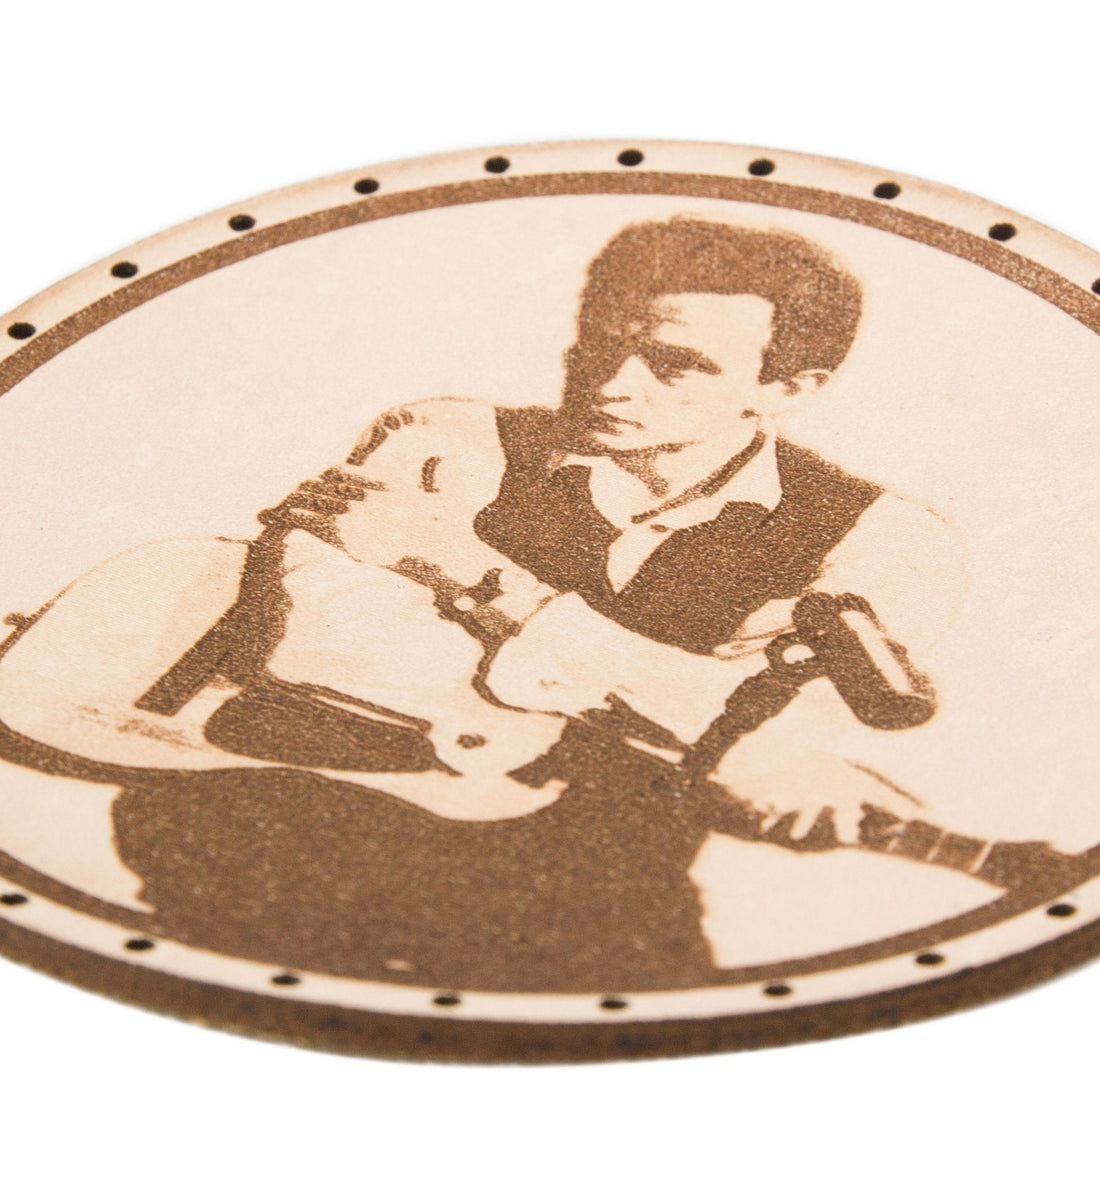 Jonny Cash Appreciation Patch - Accessories: Patches - Iron and Resin